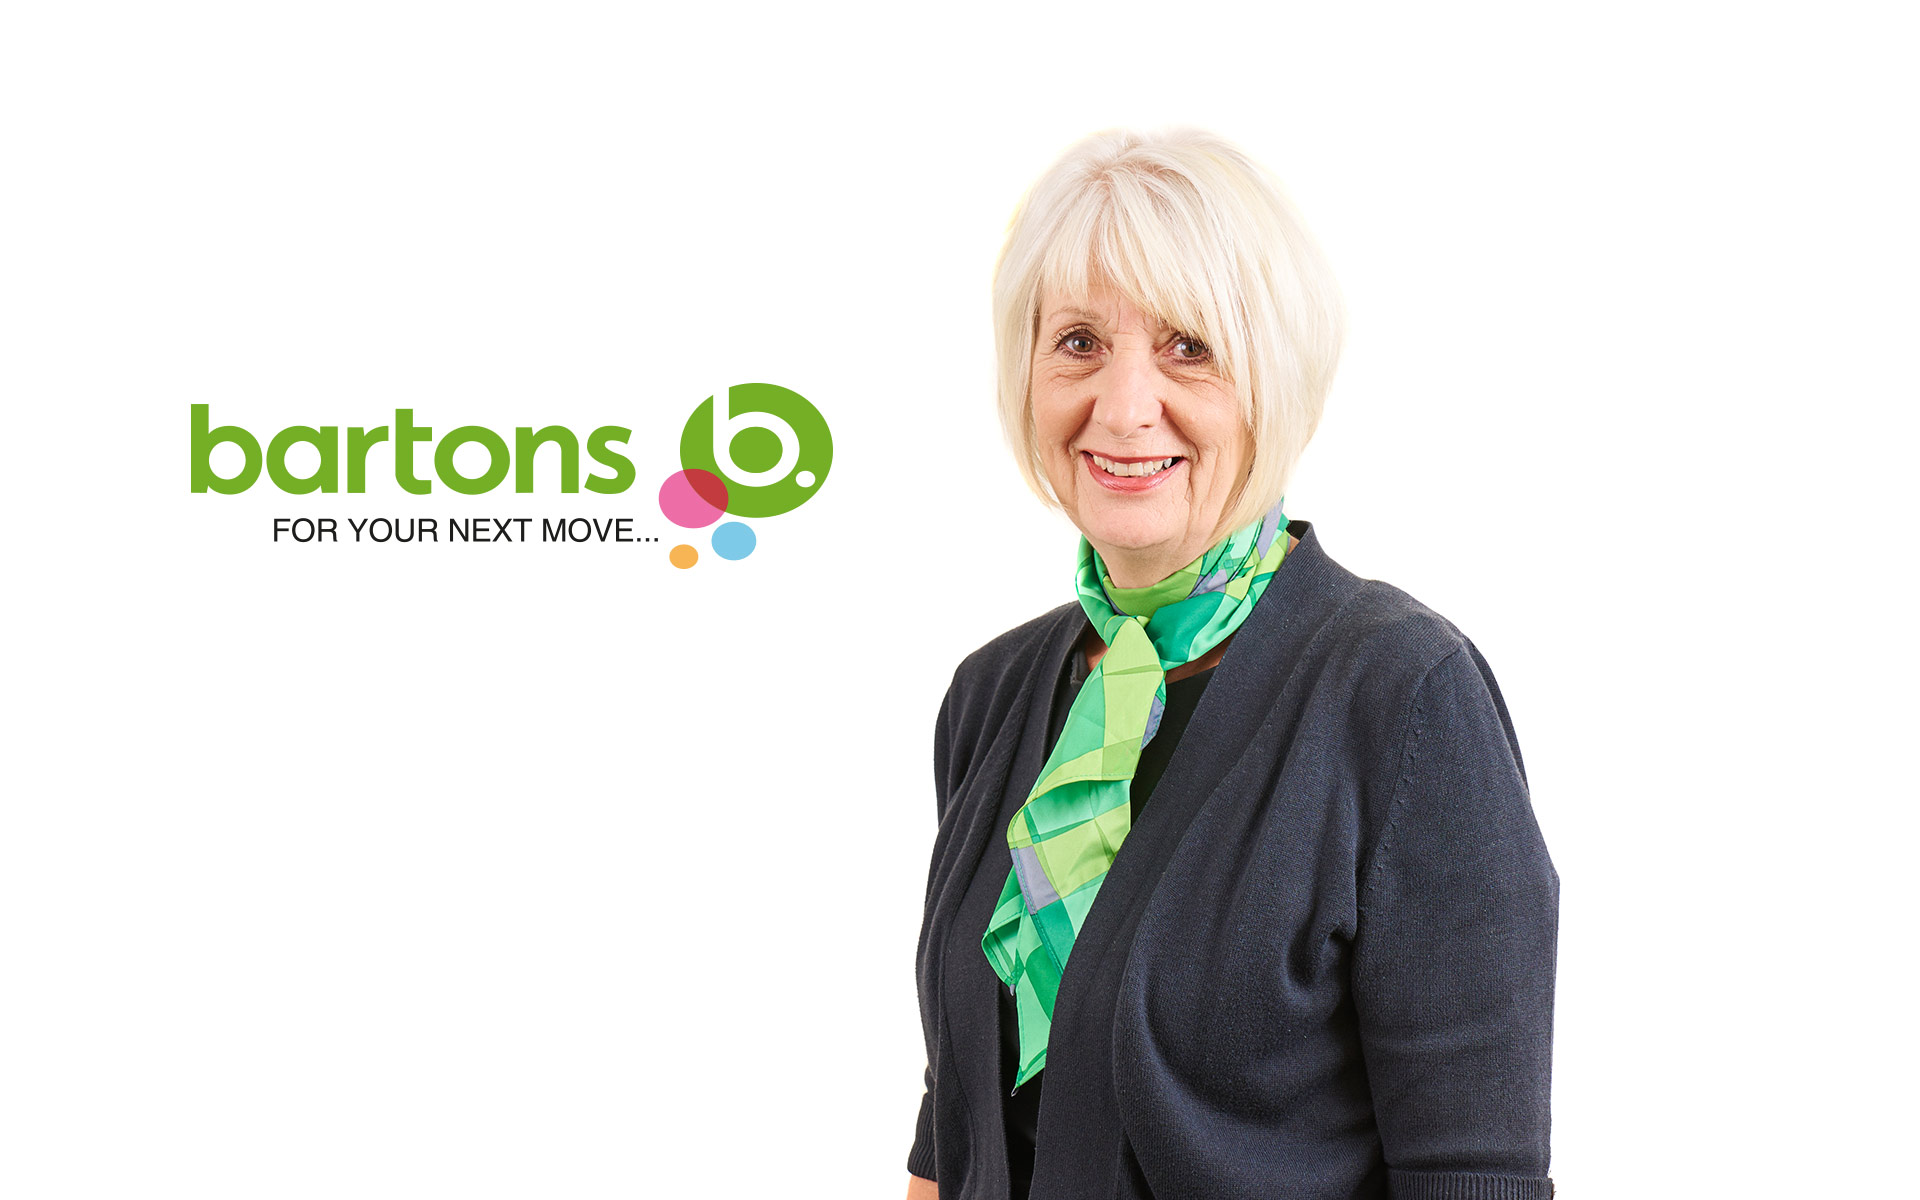 Bartons-IDEA-Rotherham-Photographer-Barbara